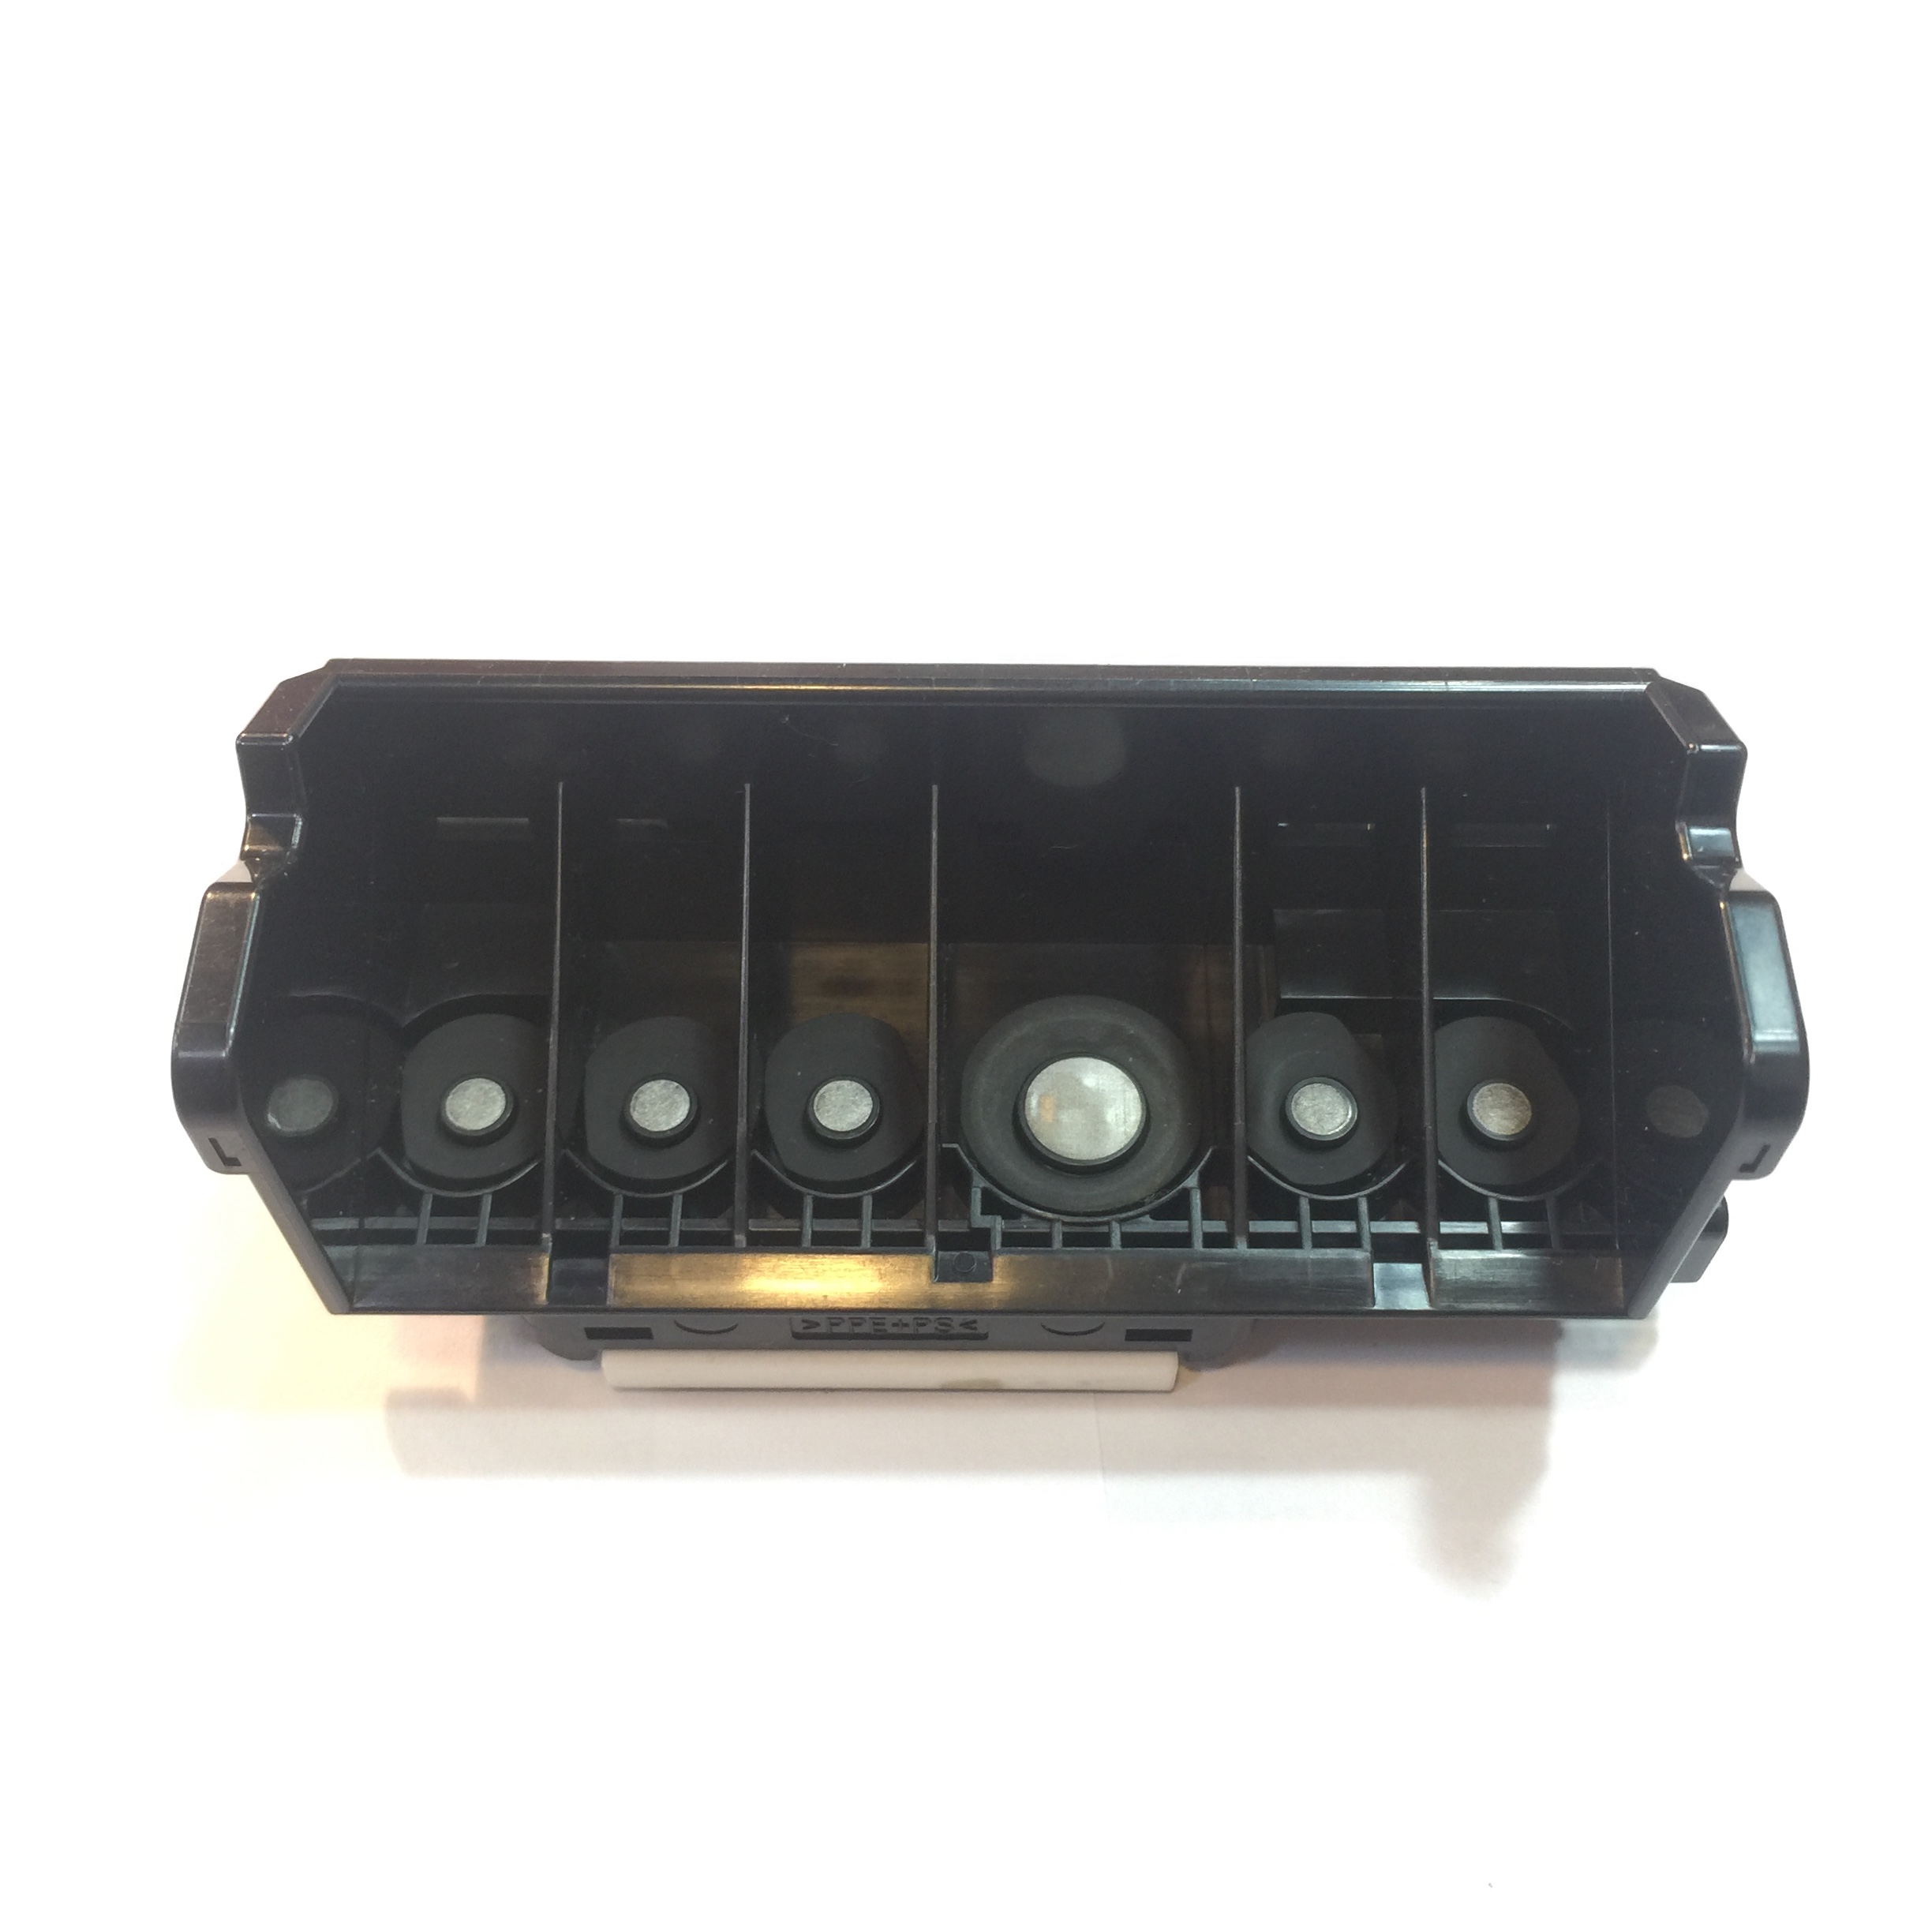 Printhead Print Head Printer Head for Canon Printer PIXMA MP980 ORIGINAL QY6-0074 QY6-0074-000 комплект ifo delta 21 инсталляция унитаз ifo special безободковый с сиденьем микролифт 458 124 21 1 0222